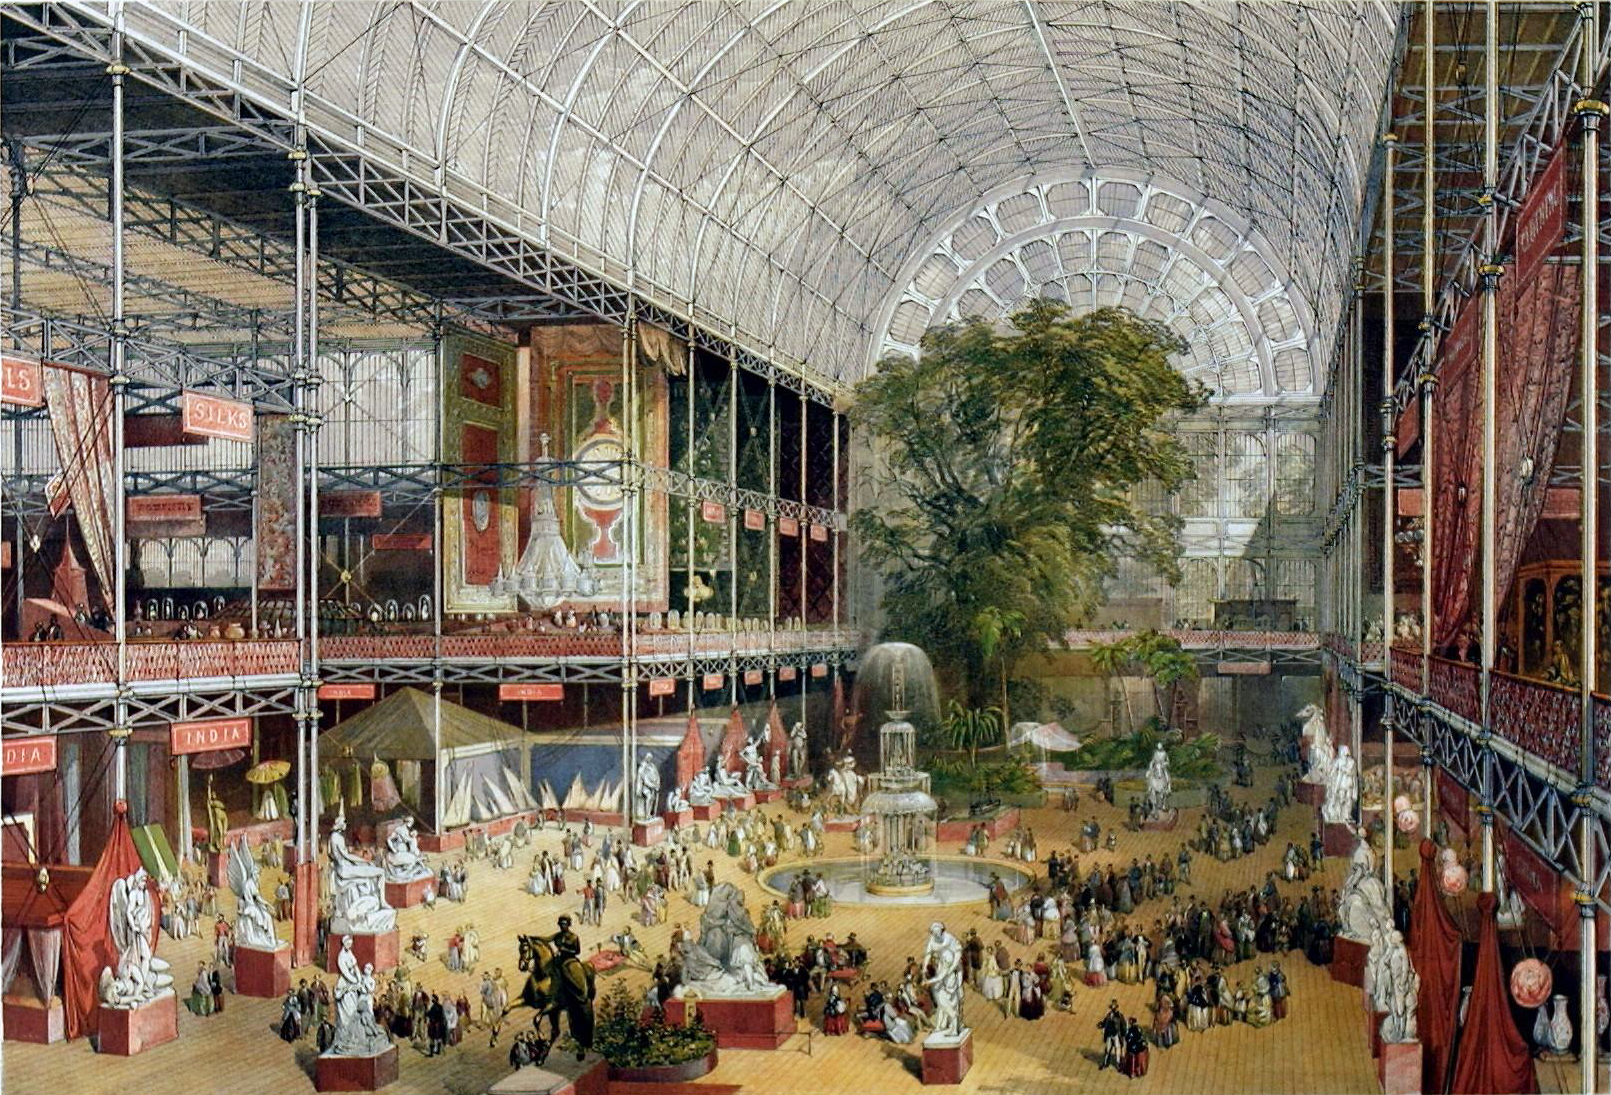 Crystal Palace interior, McNeven, J., The transept from the Grand Entrance, Souvenir of the Great Exhibition , William Simpson (lithographer), Ackermann & Co. (publisher), 1851, V&A